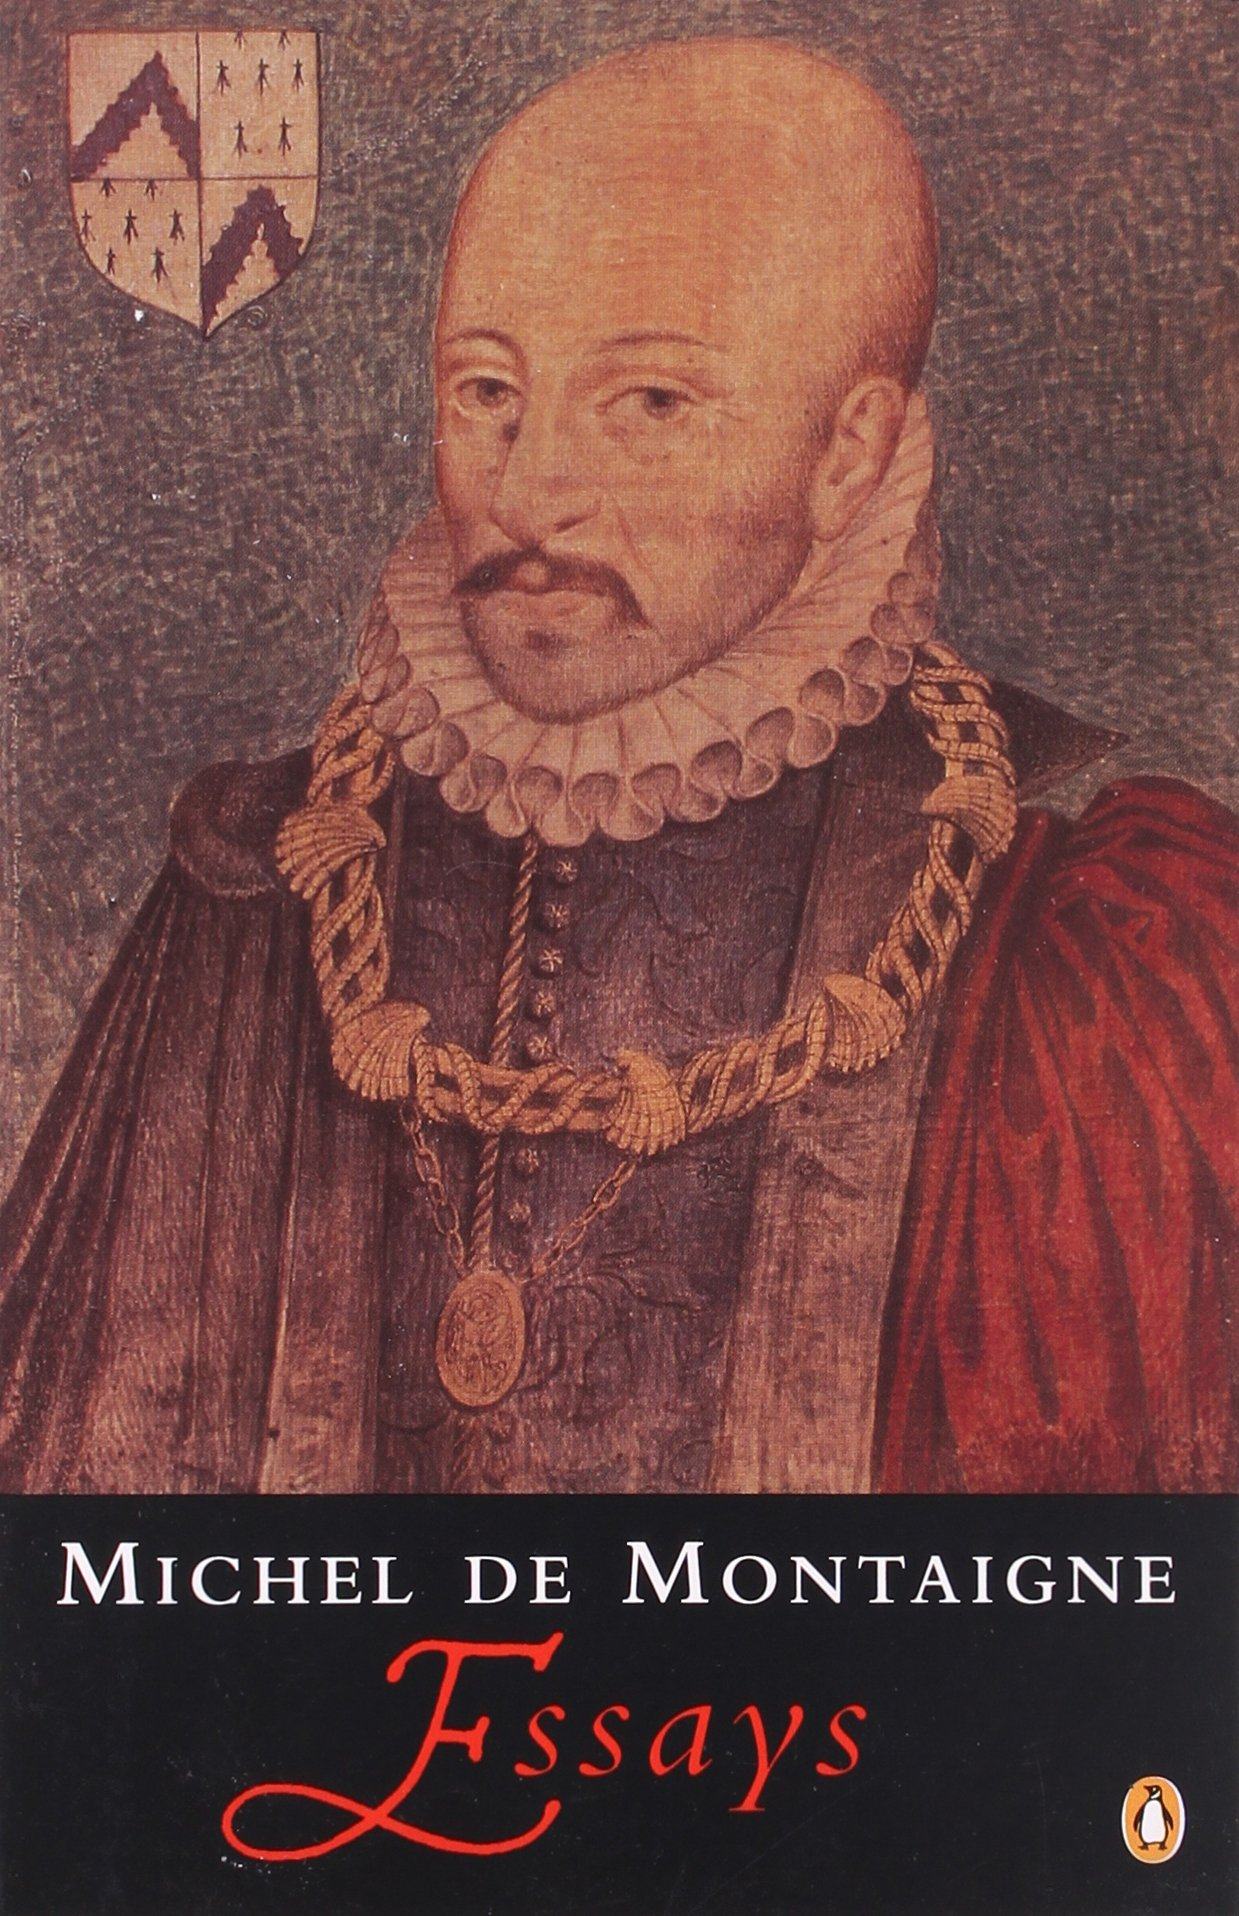 essays of michel de montaigne summary